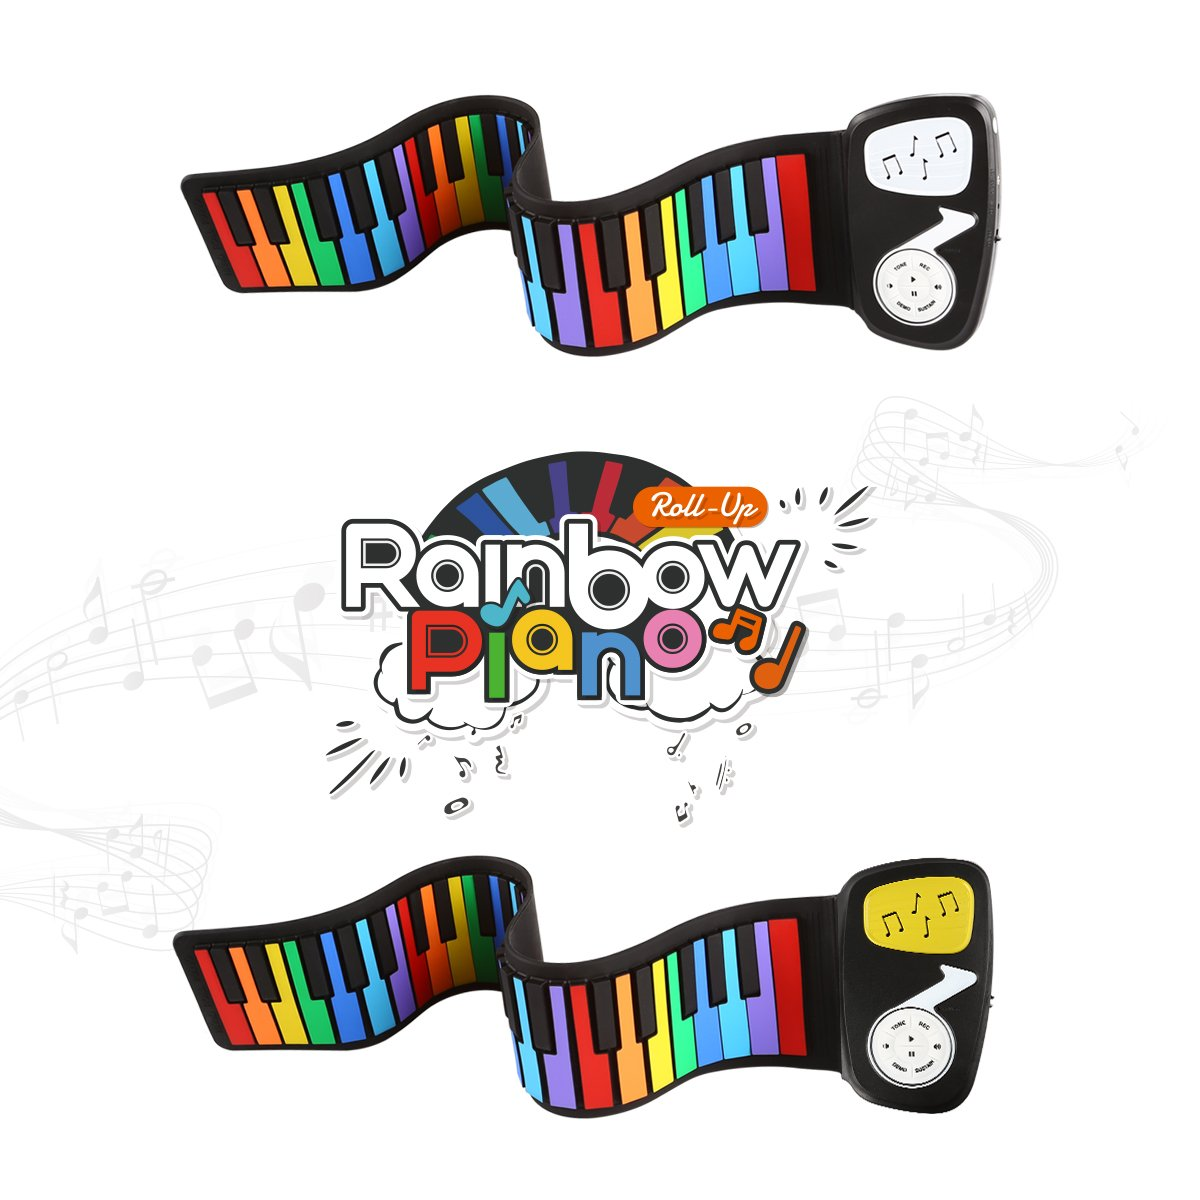 JouerNow Rainbow Roll Up Piano, with Music Scores - Play by Color, 49 Standard Keys with Built-in Speaker, Educational Toy, White by JouerNow (Image #9)